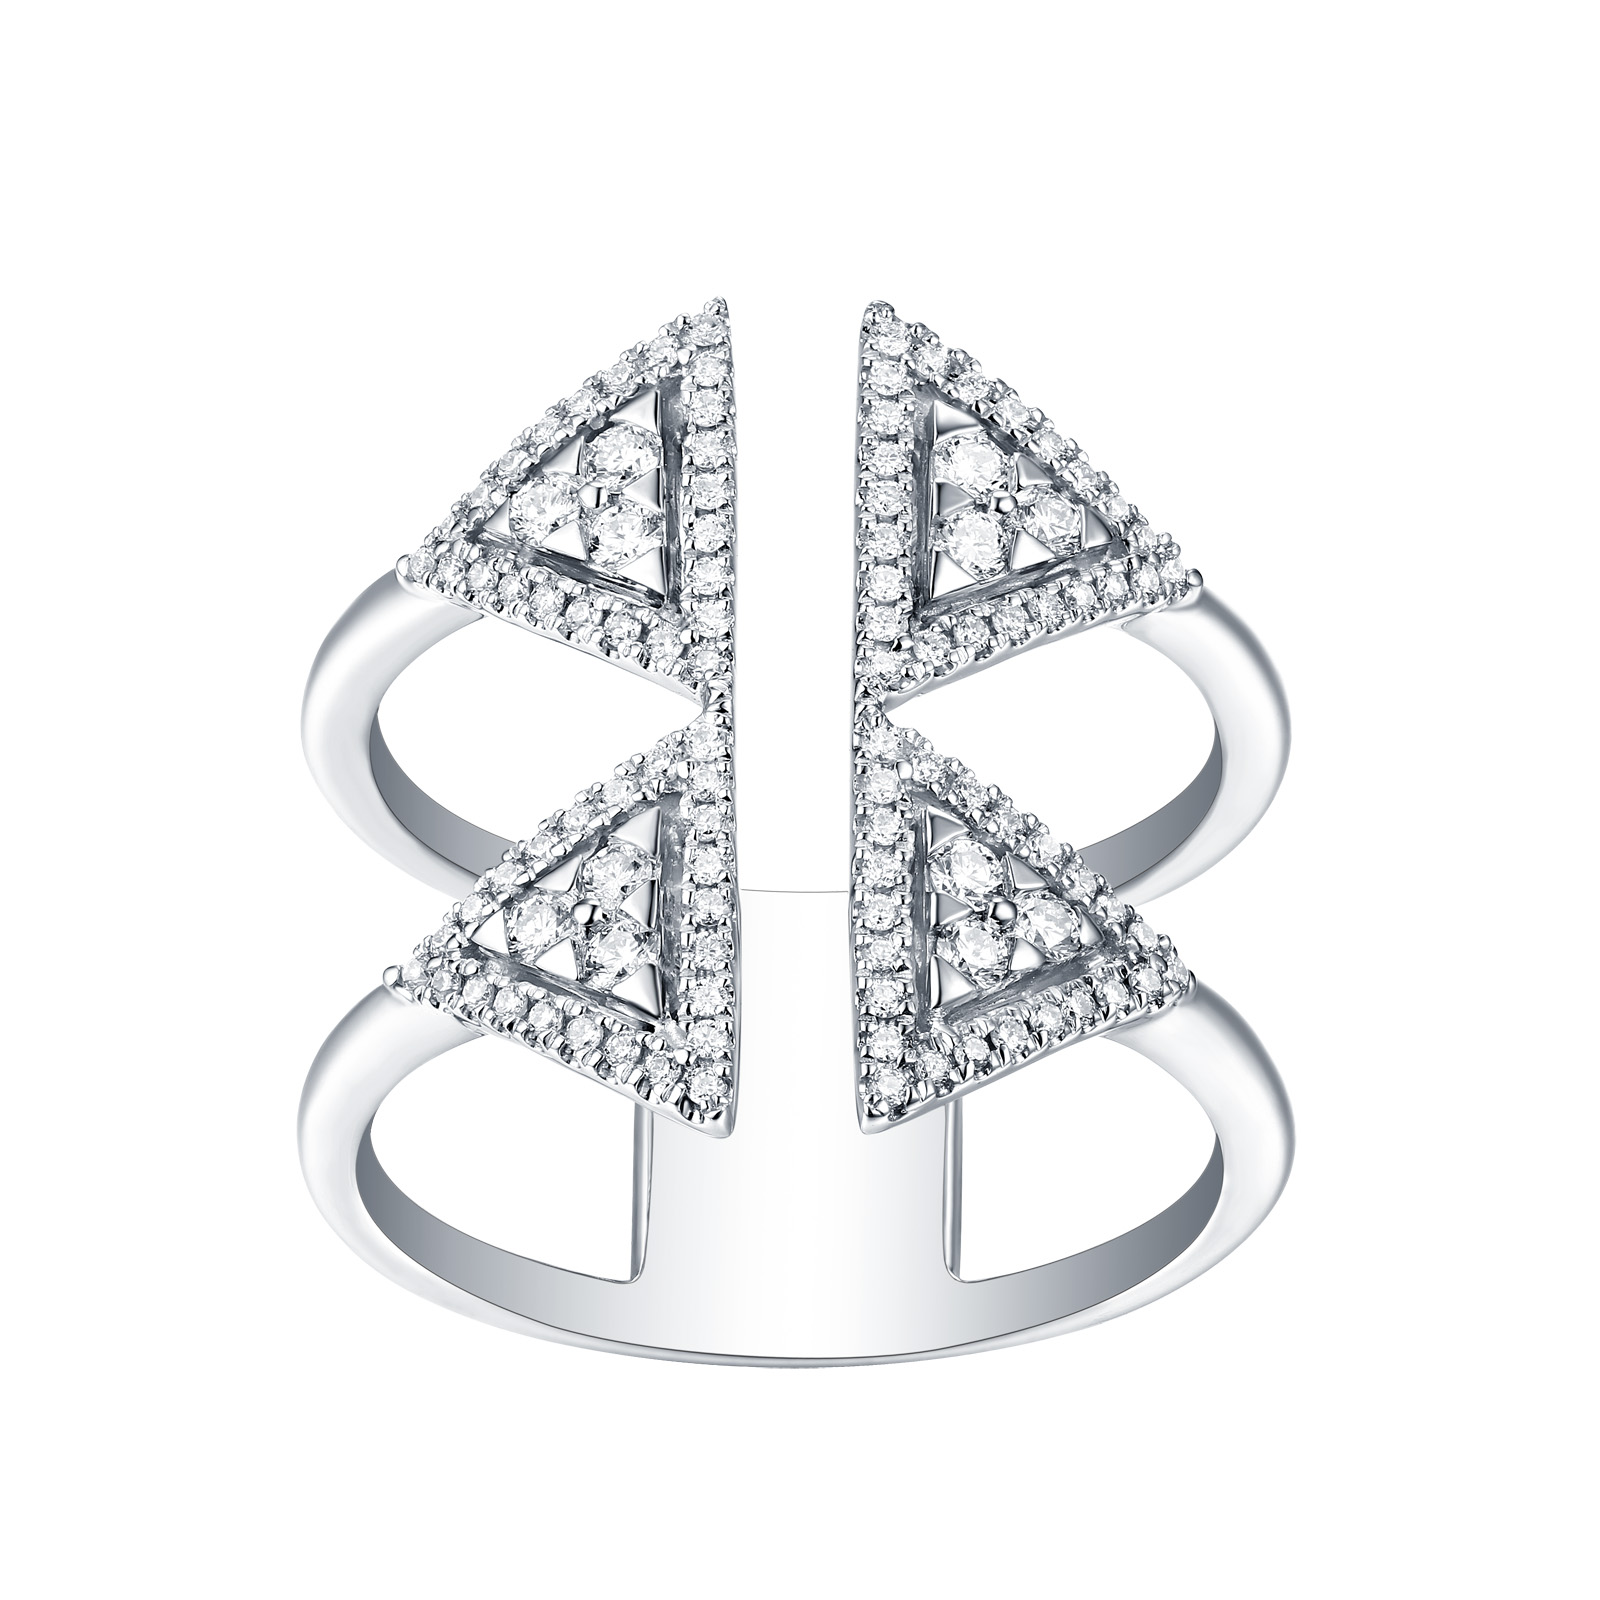 R25082WHT- 14K White Gold Diamond Ring, 0.42 TCW